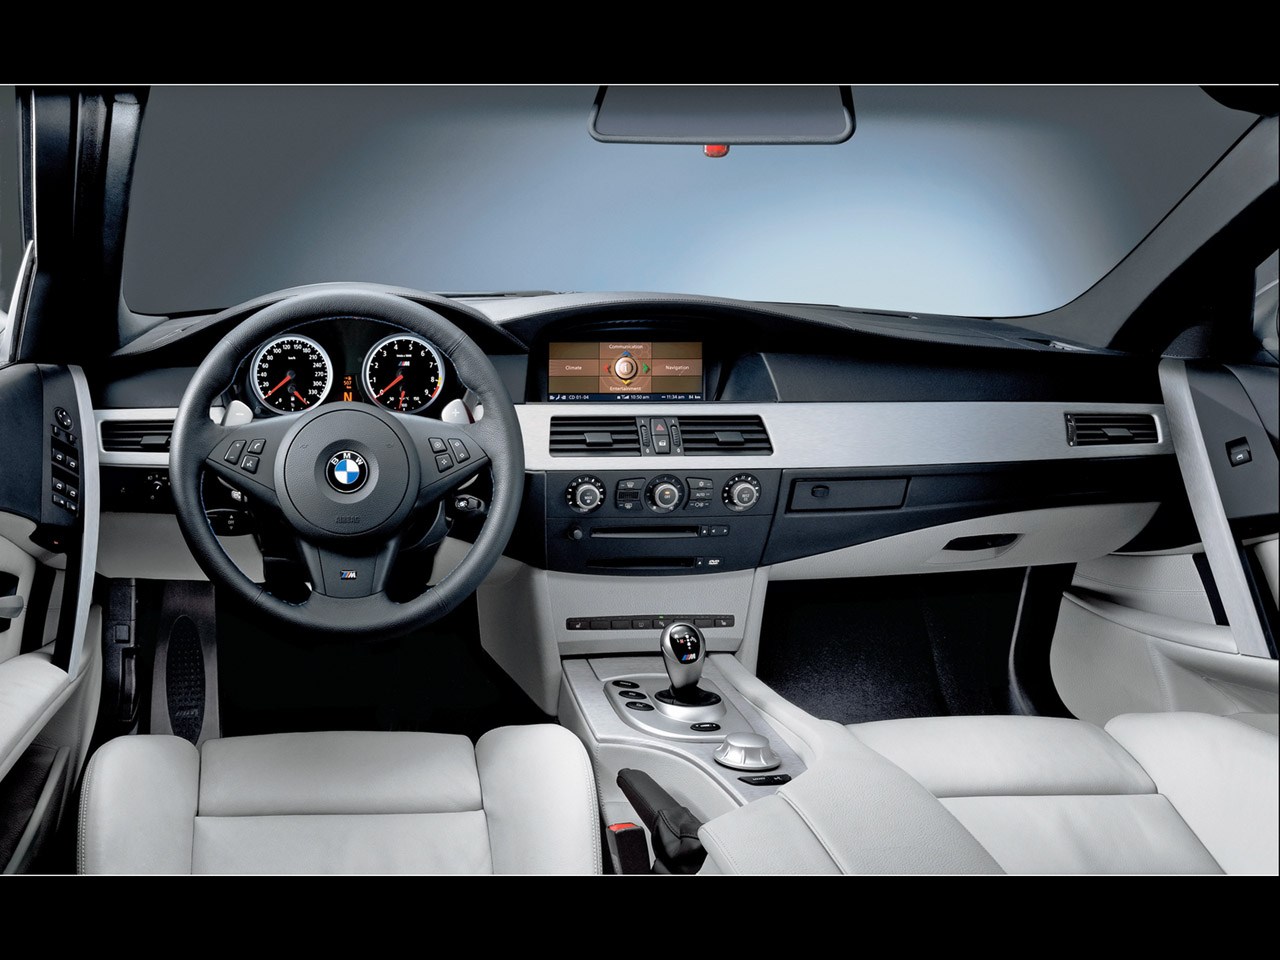 Bmw Automobiles Bmw X5 2005 Interior